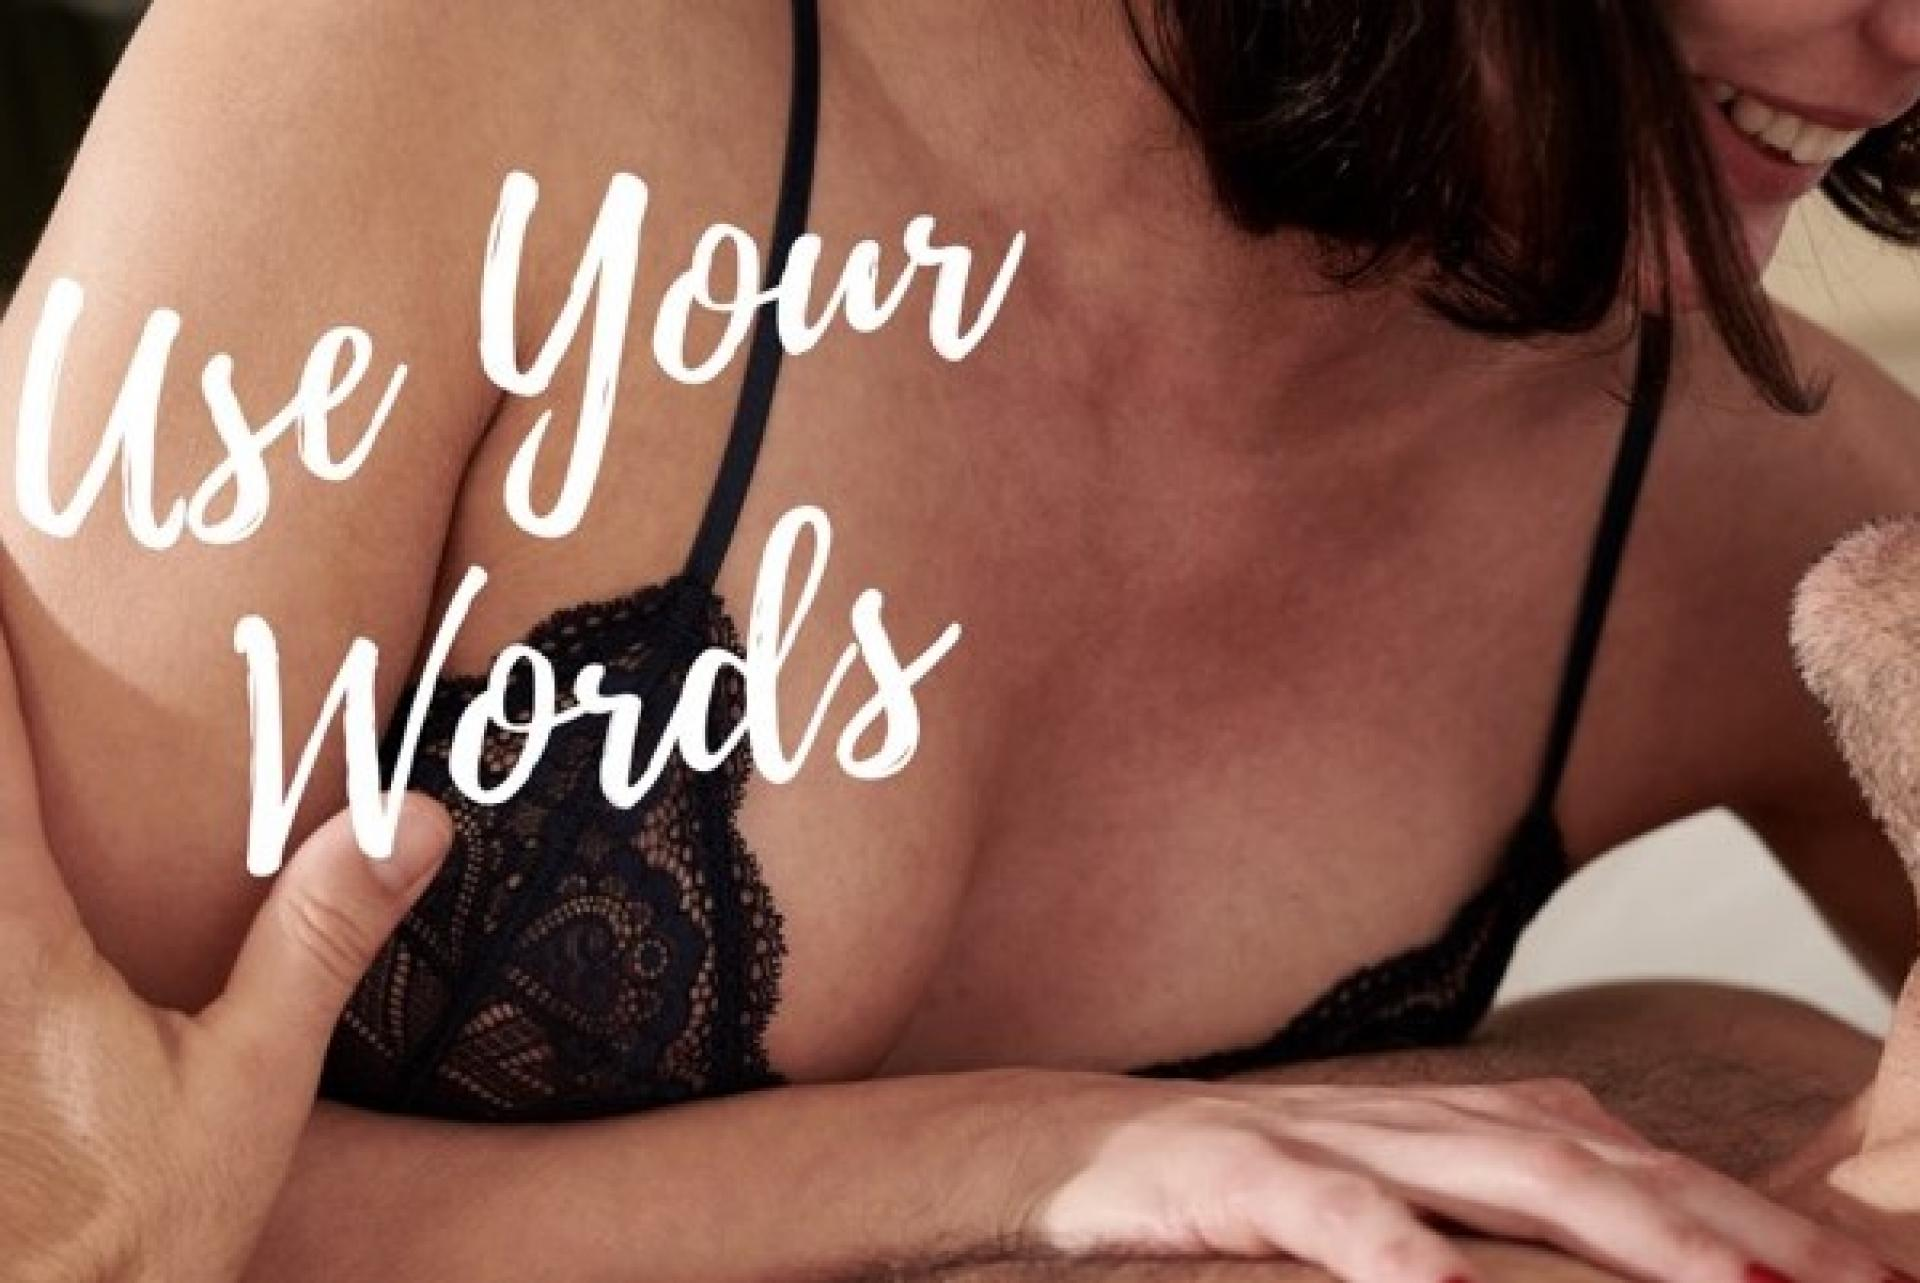 SDC 2HotWives Use Your Words Podcast Swingers Open Lifestyle Communication